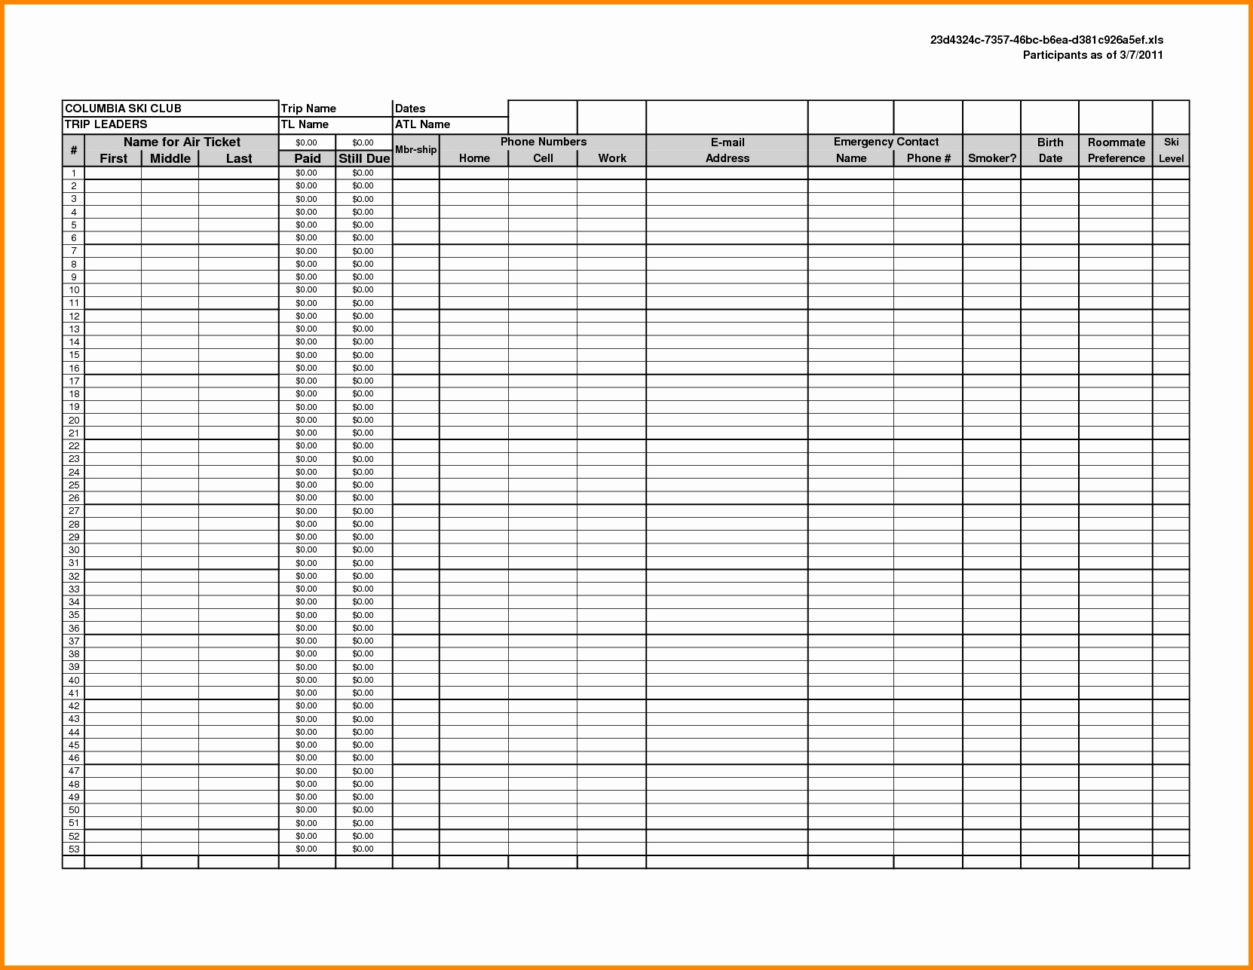 Rent Payment Spreadsheet With Regard To Rent Payment Excel Spreadsheetest Of Ledger Template  Askoverflow